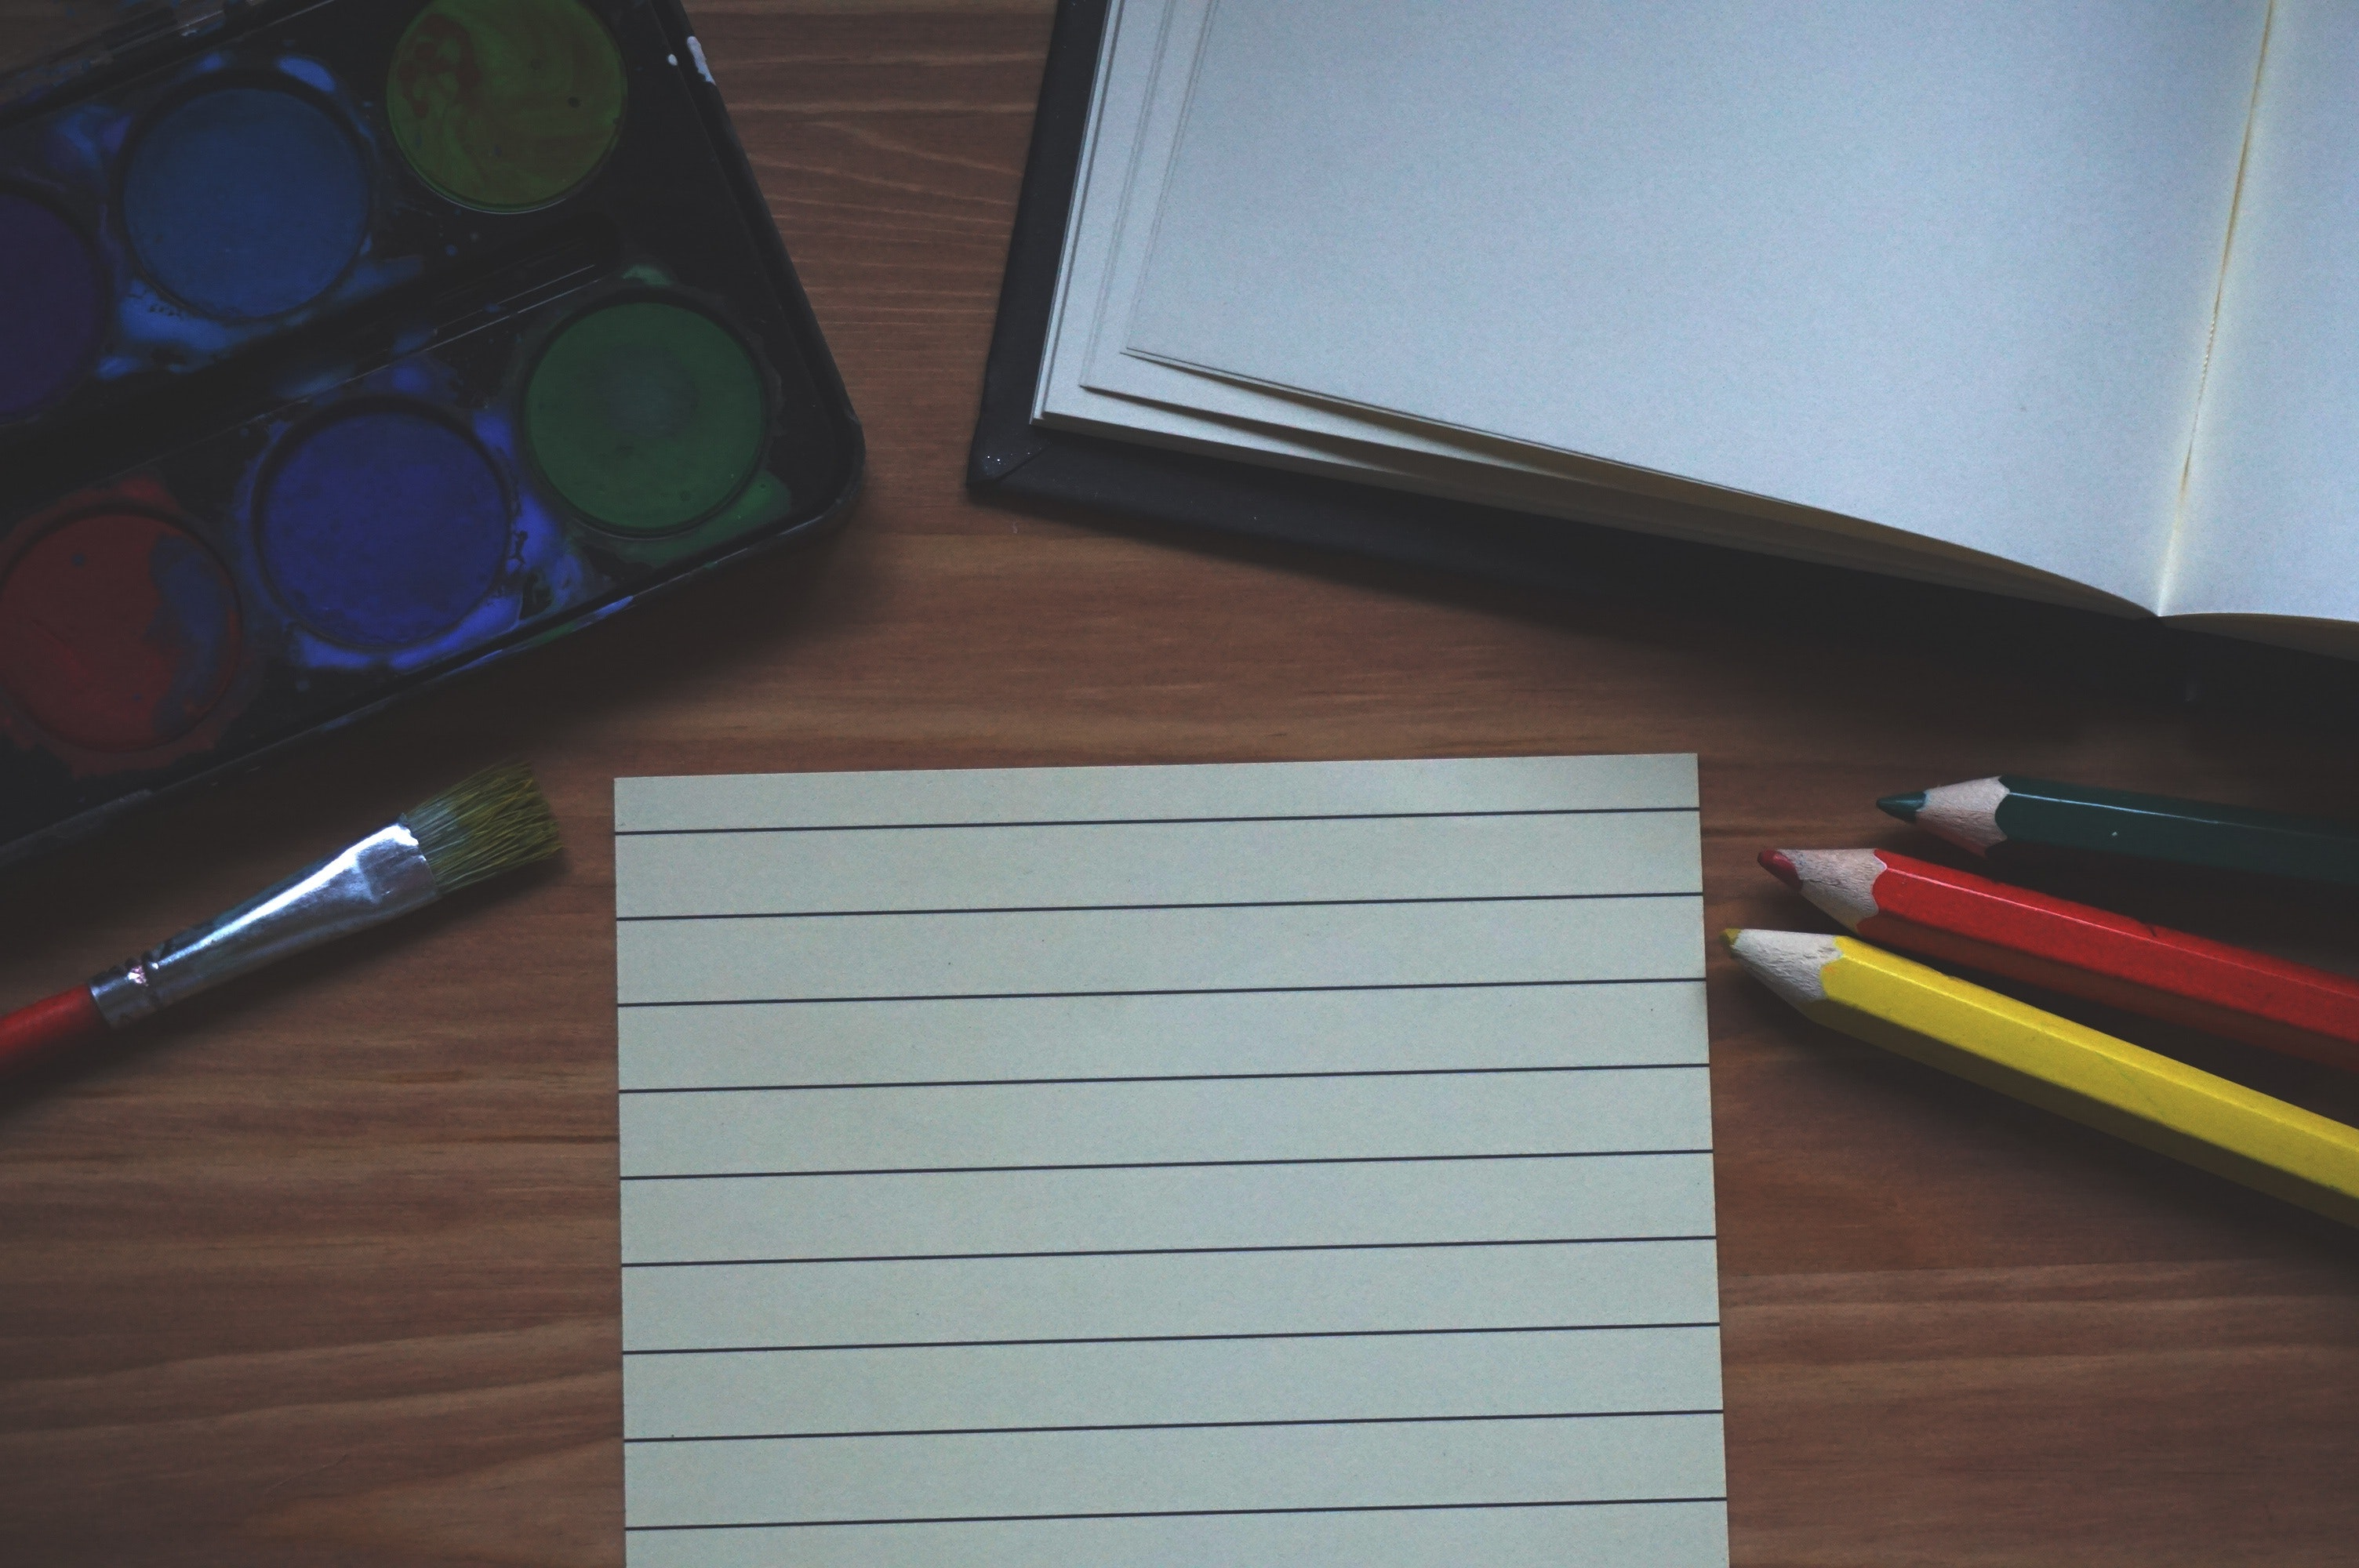 White ruled paper beside yellow colored pencil photo